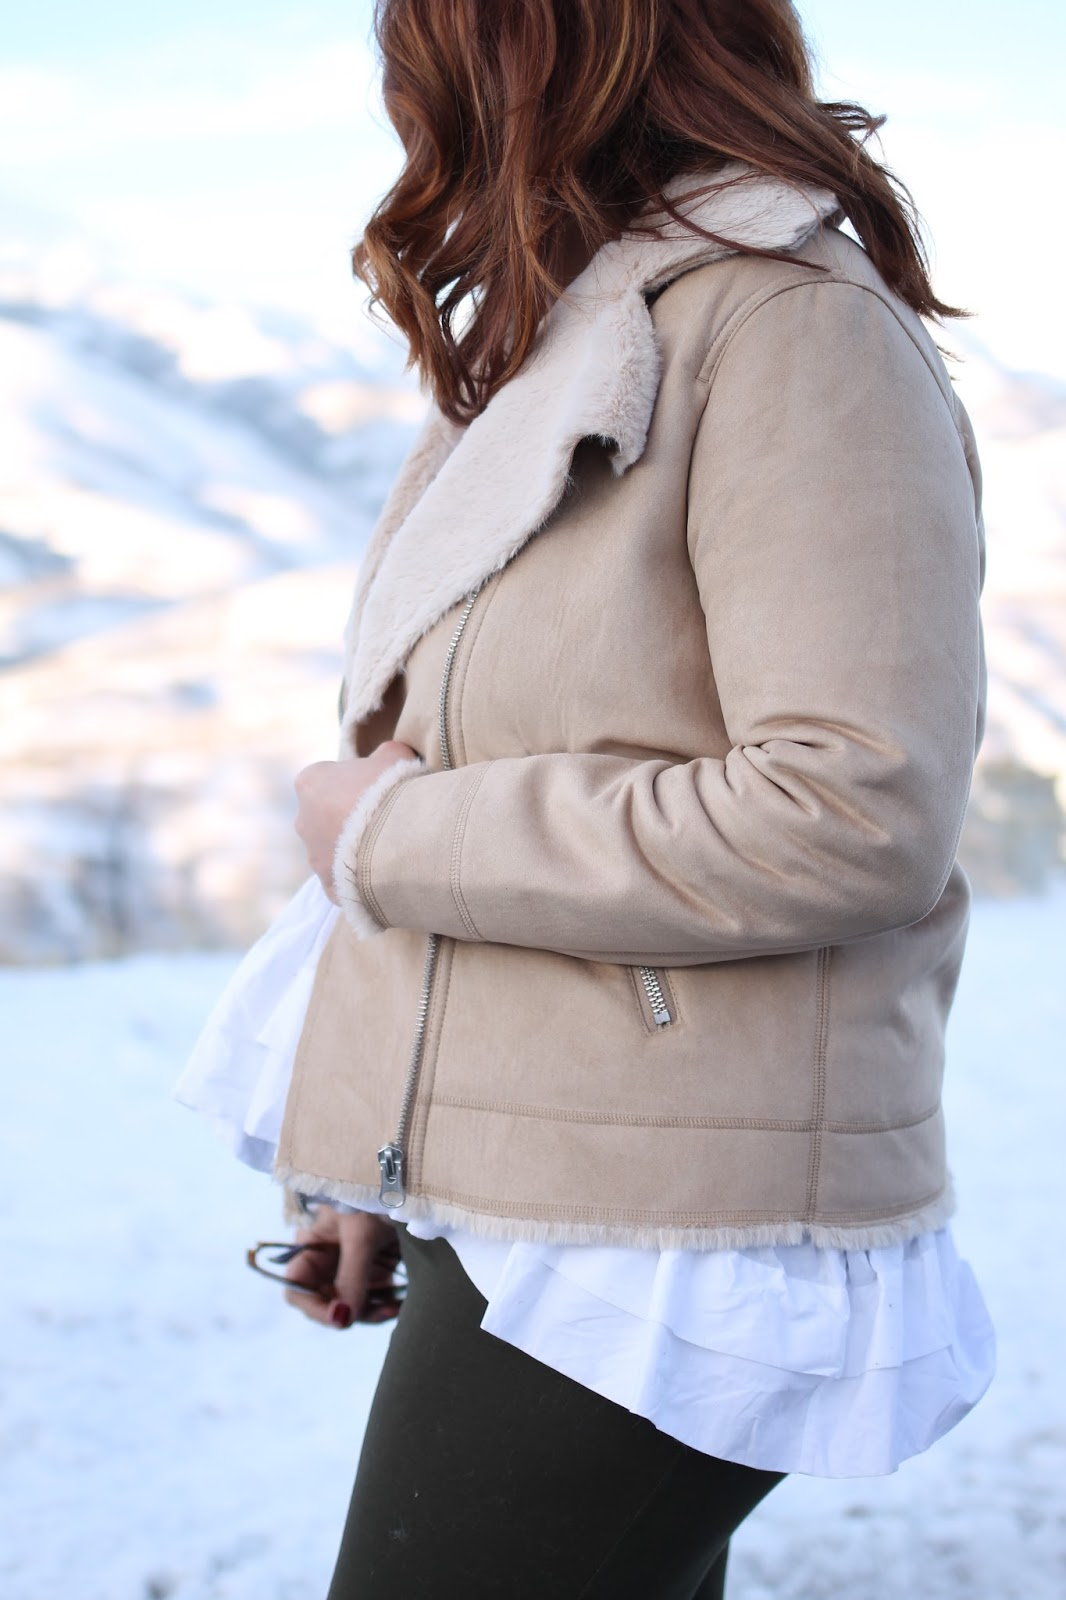 Armitron watch, faux shearling moto jacket, post partum outfit, mom style